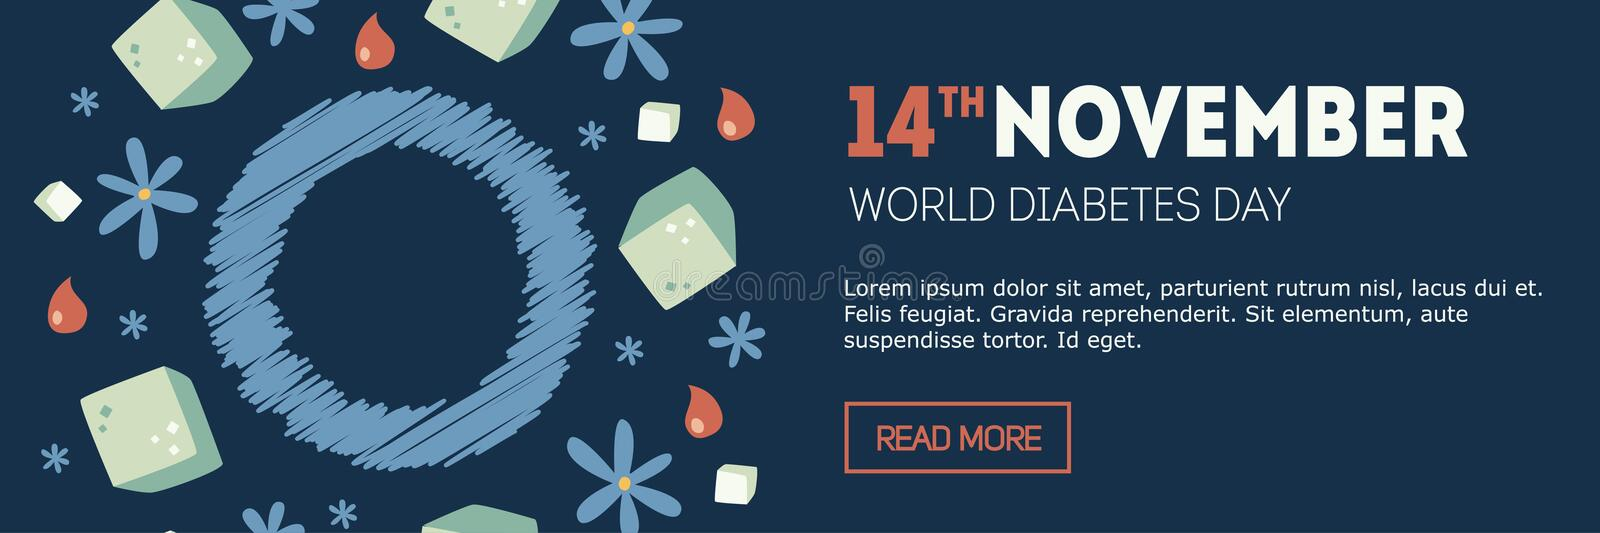 Diabetes day banner stock image